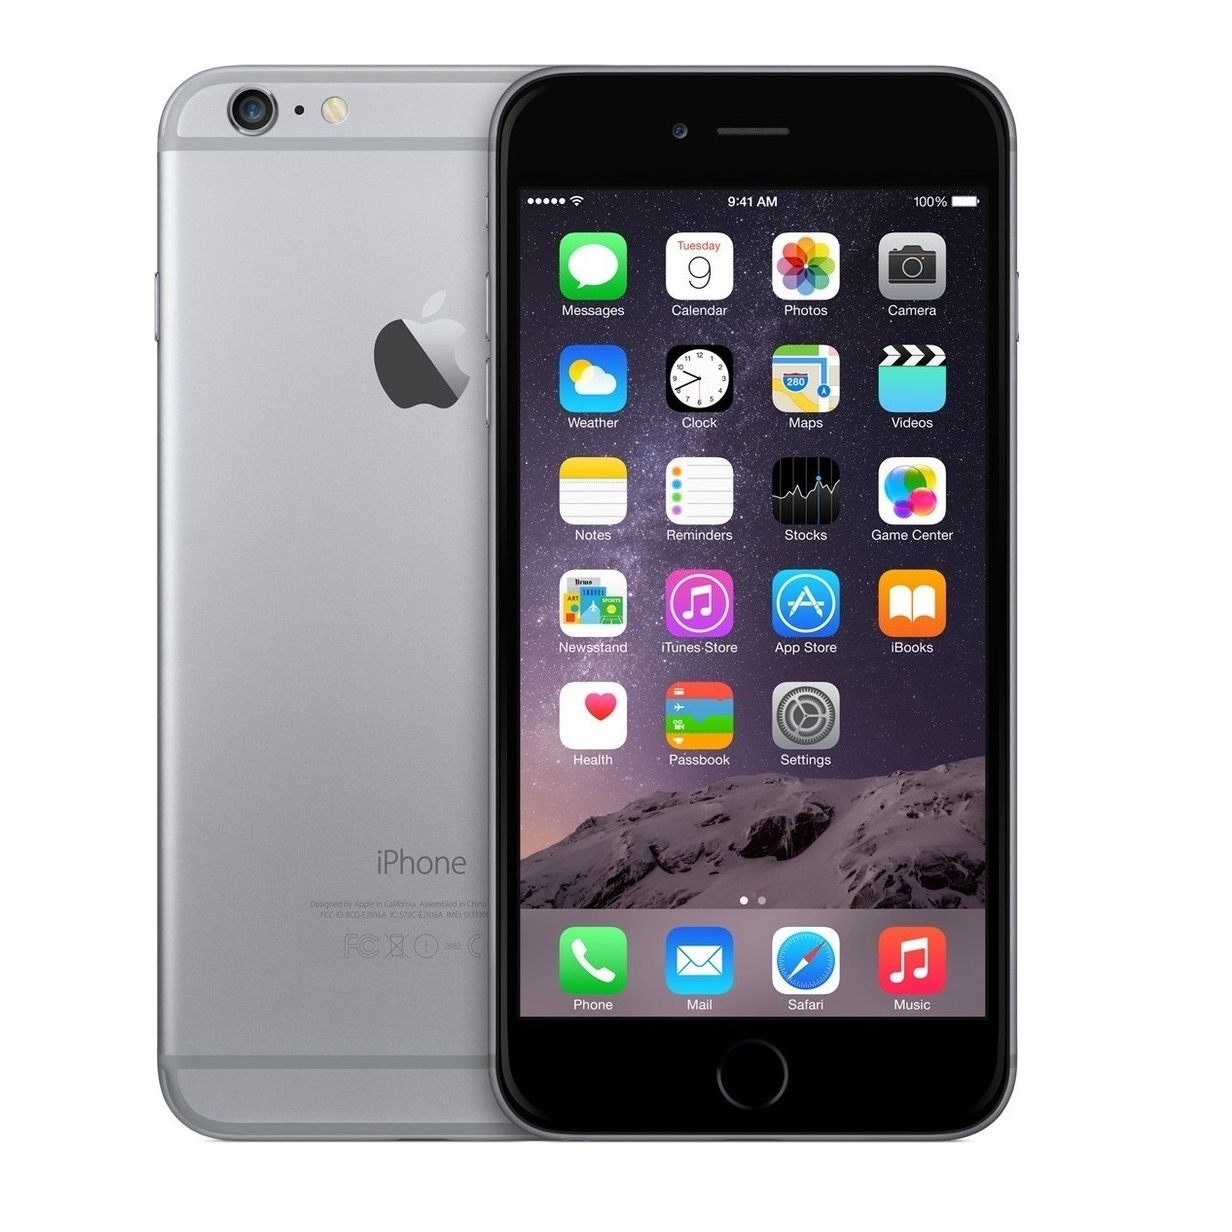 t iphone 6 plus apple iphone 6 plus 64gb no contract smartphone a1522 t mobile ebay